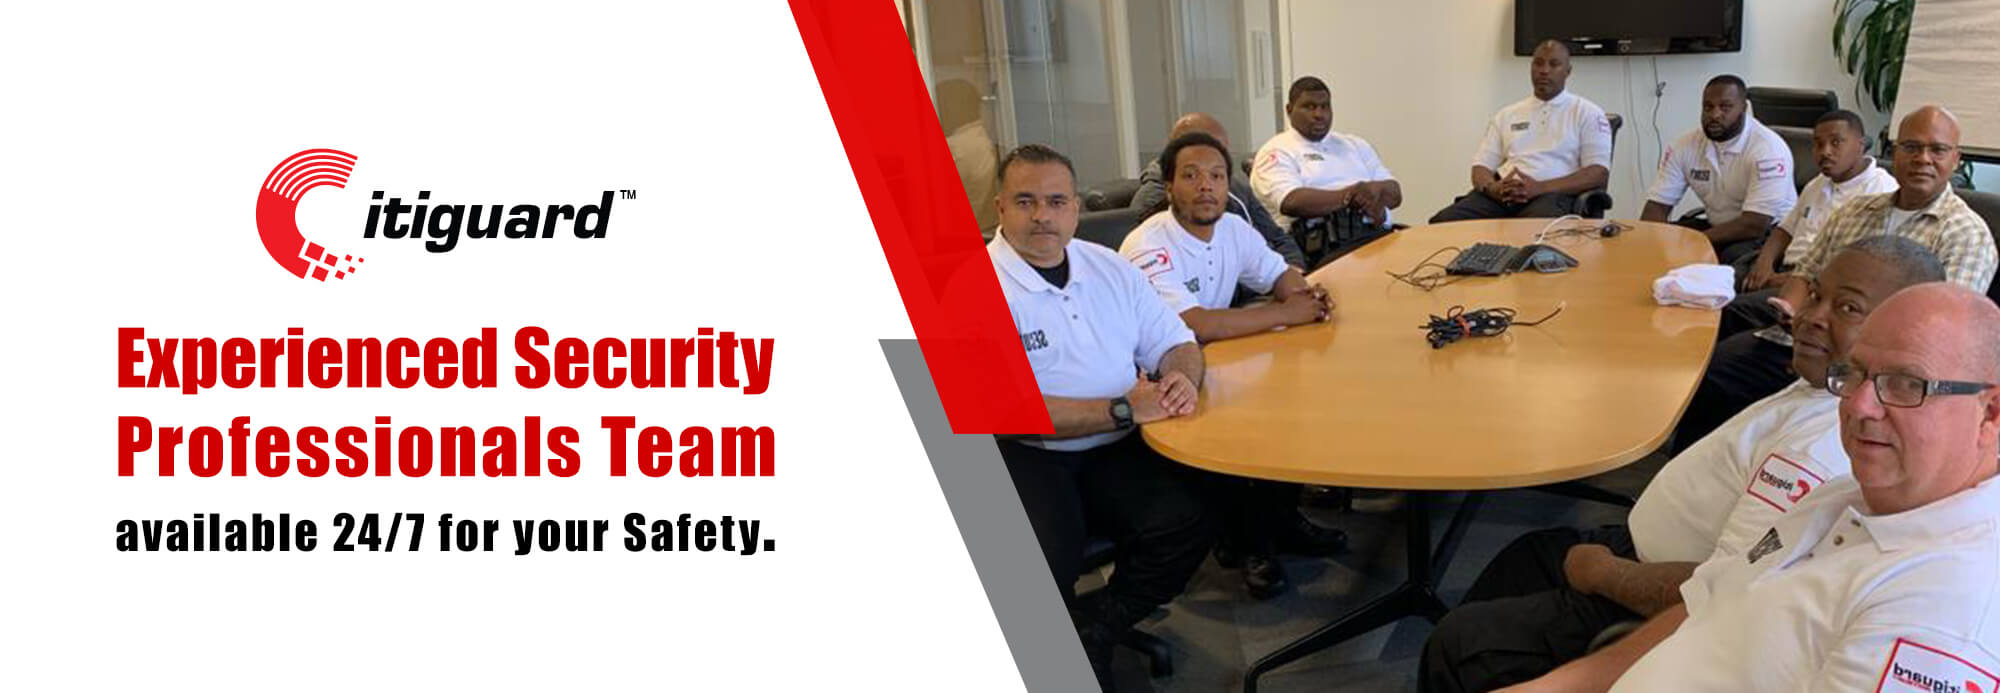 Experienced Security Professionals Team